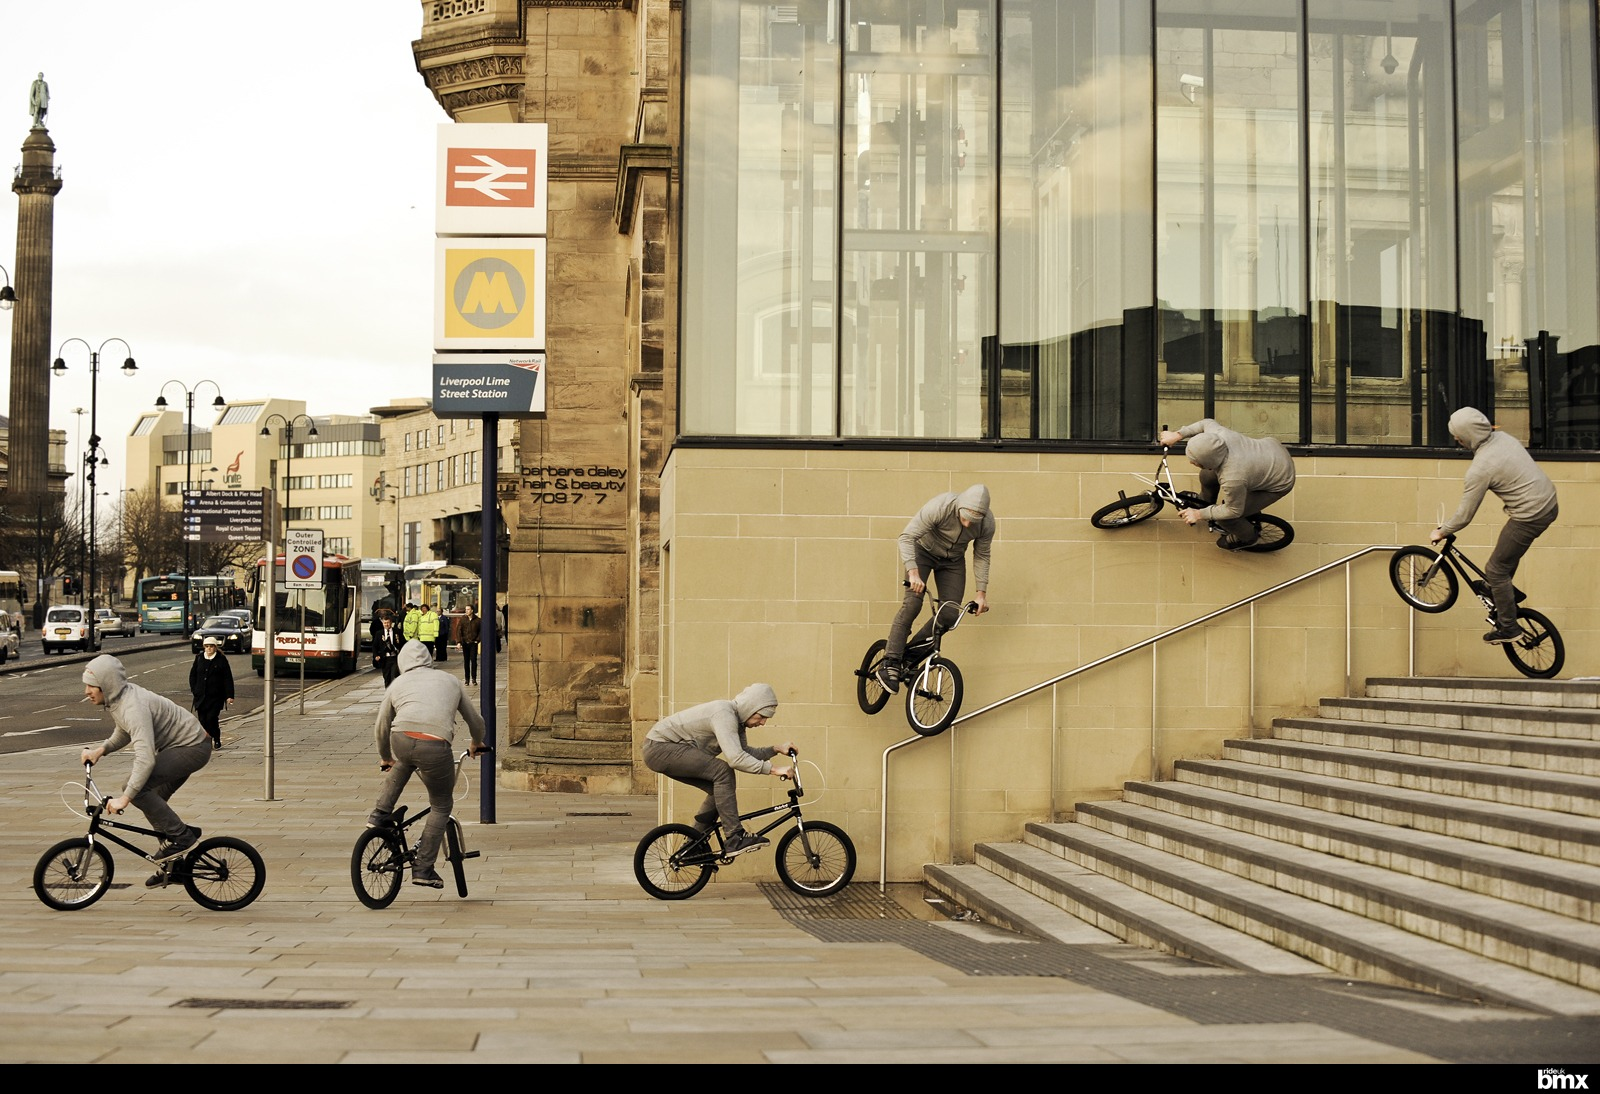 Phil Demattia wallride to 180 at Lime Street Station in his current hometown of Liverpool.